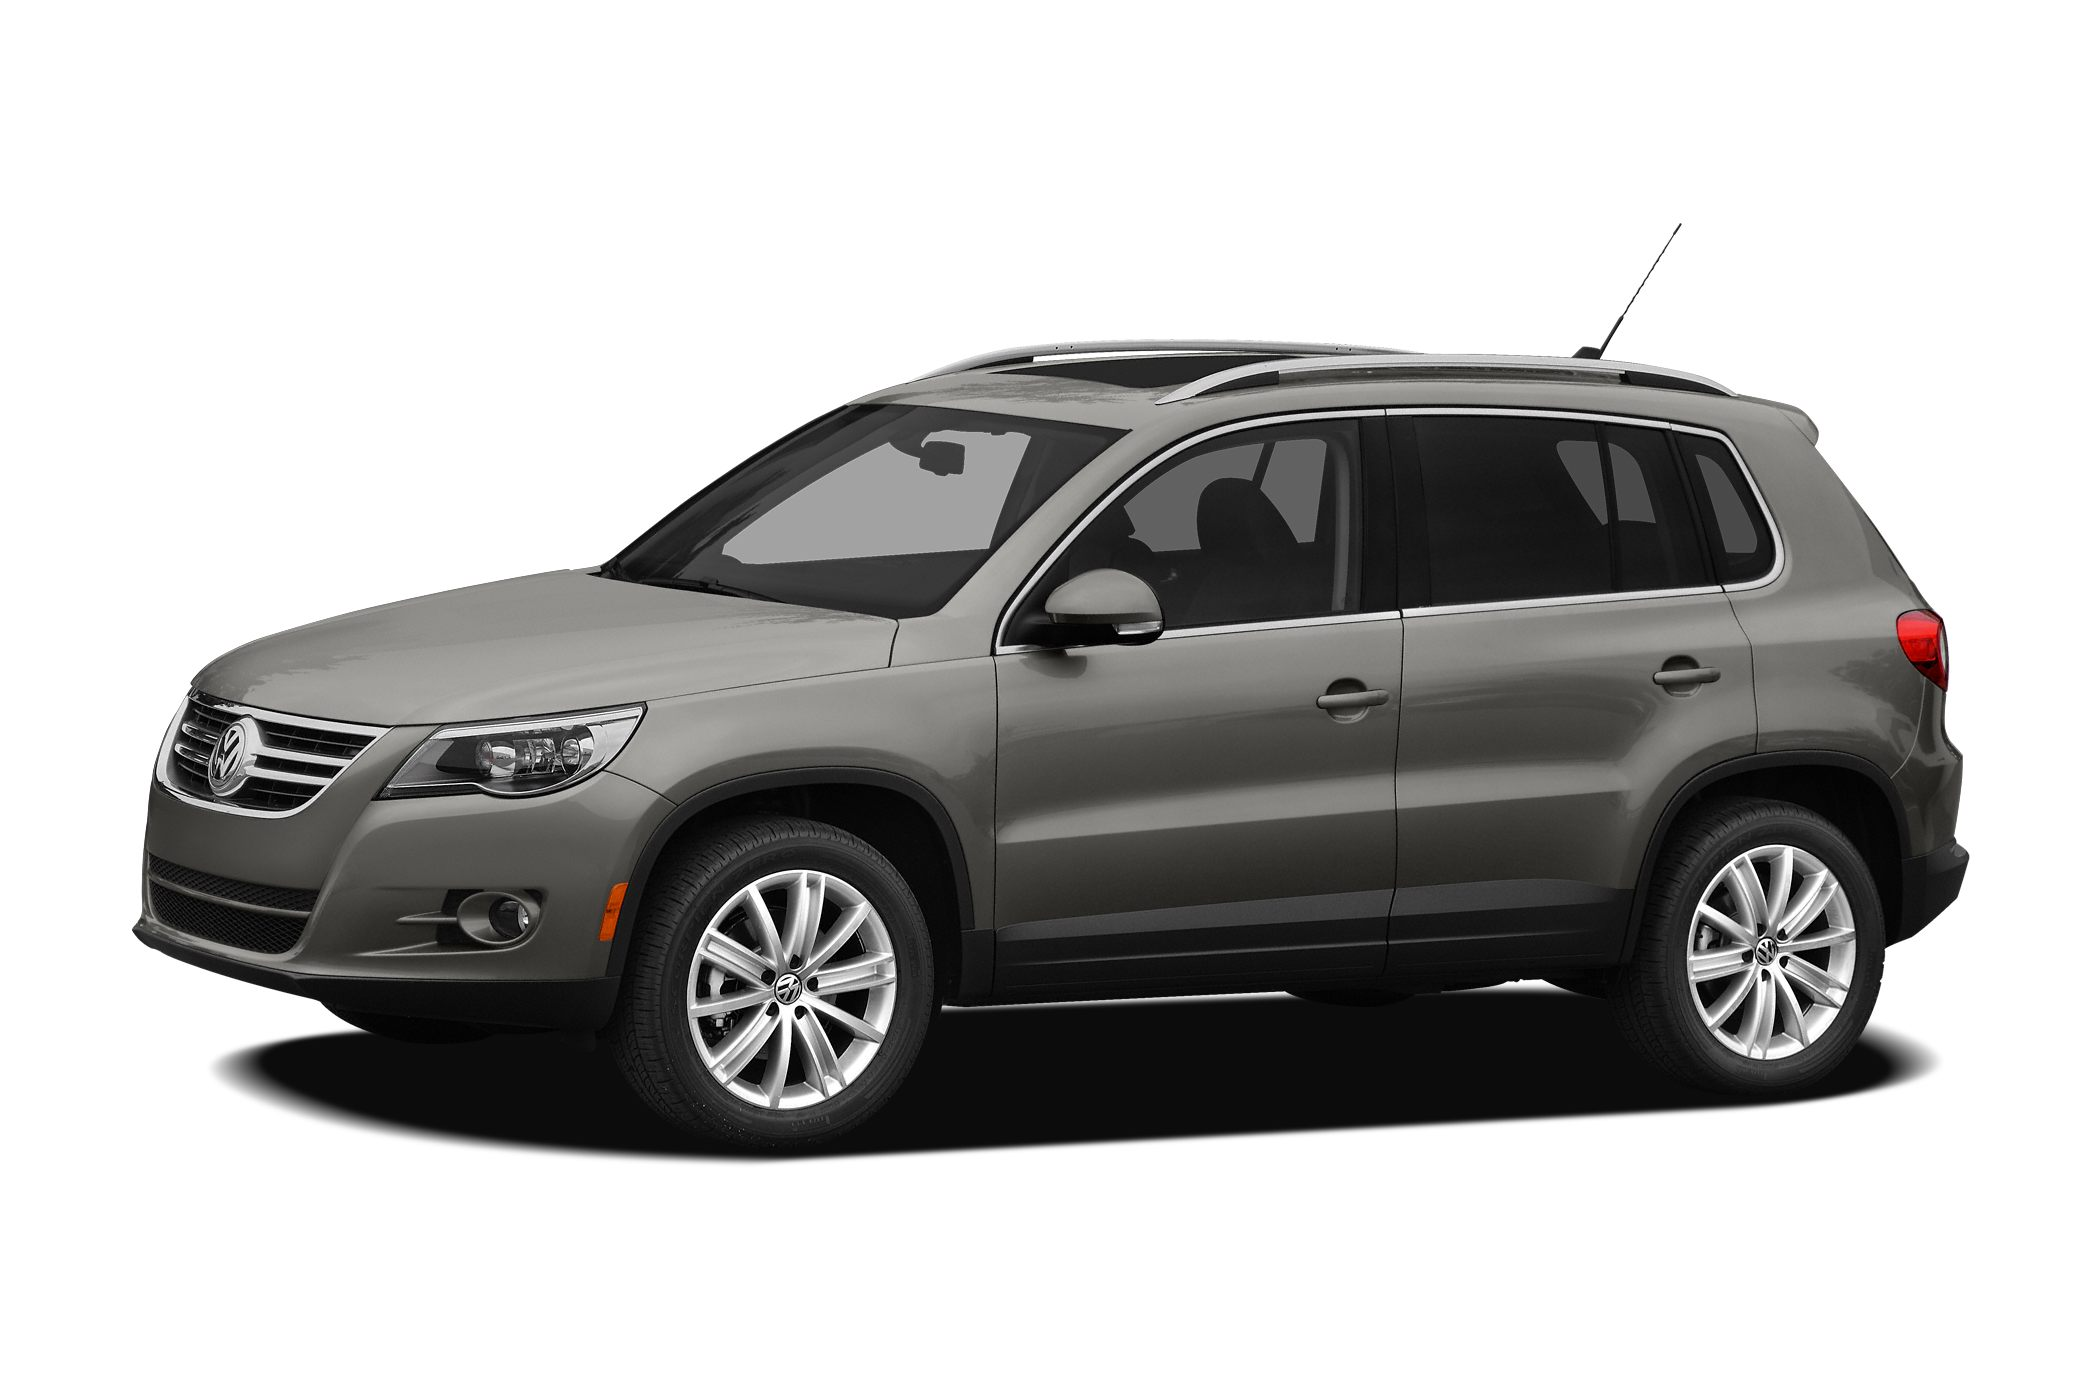 2010 Volkswagen Tiguan SEL SUV for sale in Mooresville for $15,861 with 86,777 miles.